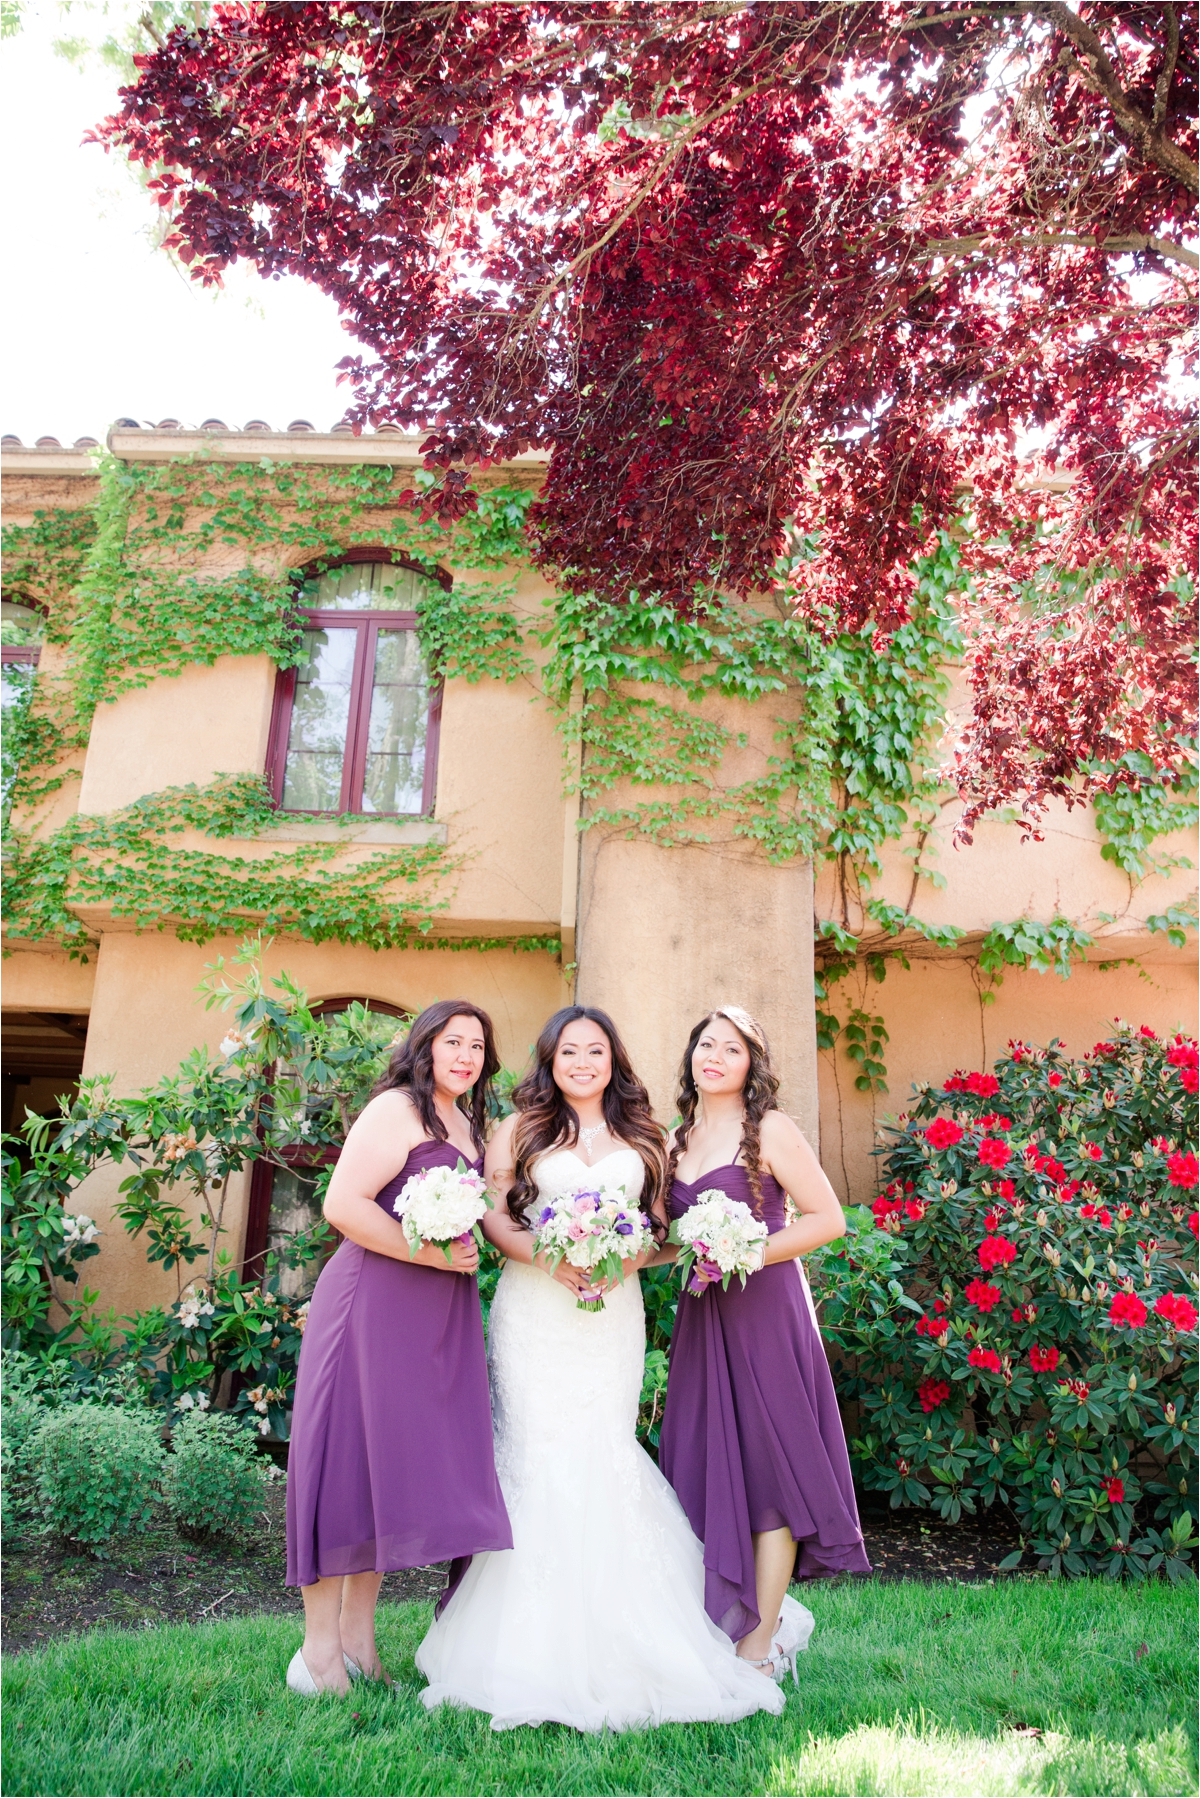 Purple bridesmaid dress vineyard wedding photos from Vintner's Inn in Santa Rosa, CA. Pictures by Briana Calderon Photography based in the San Francisco Bay Area in California.